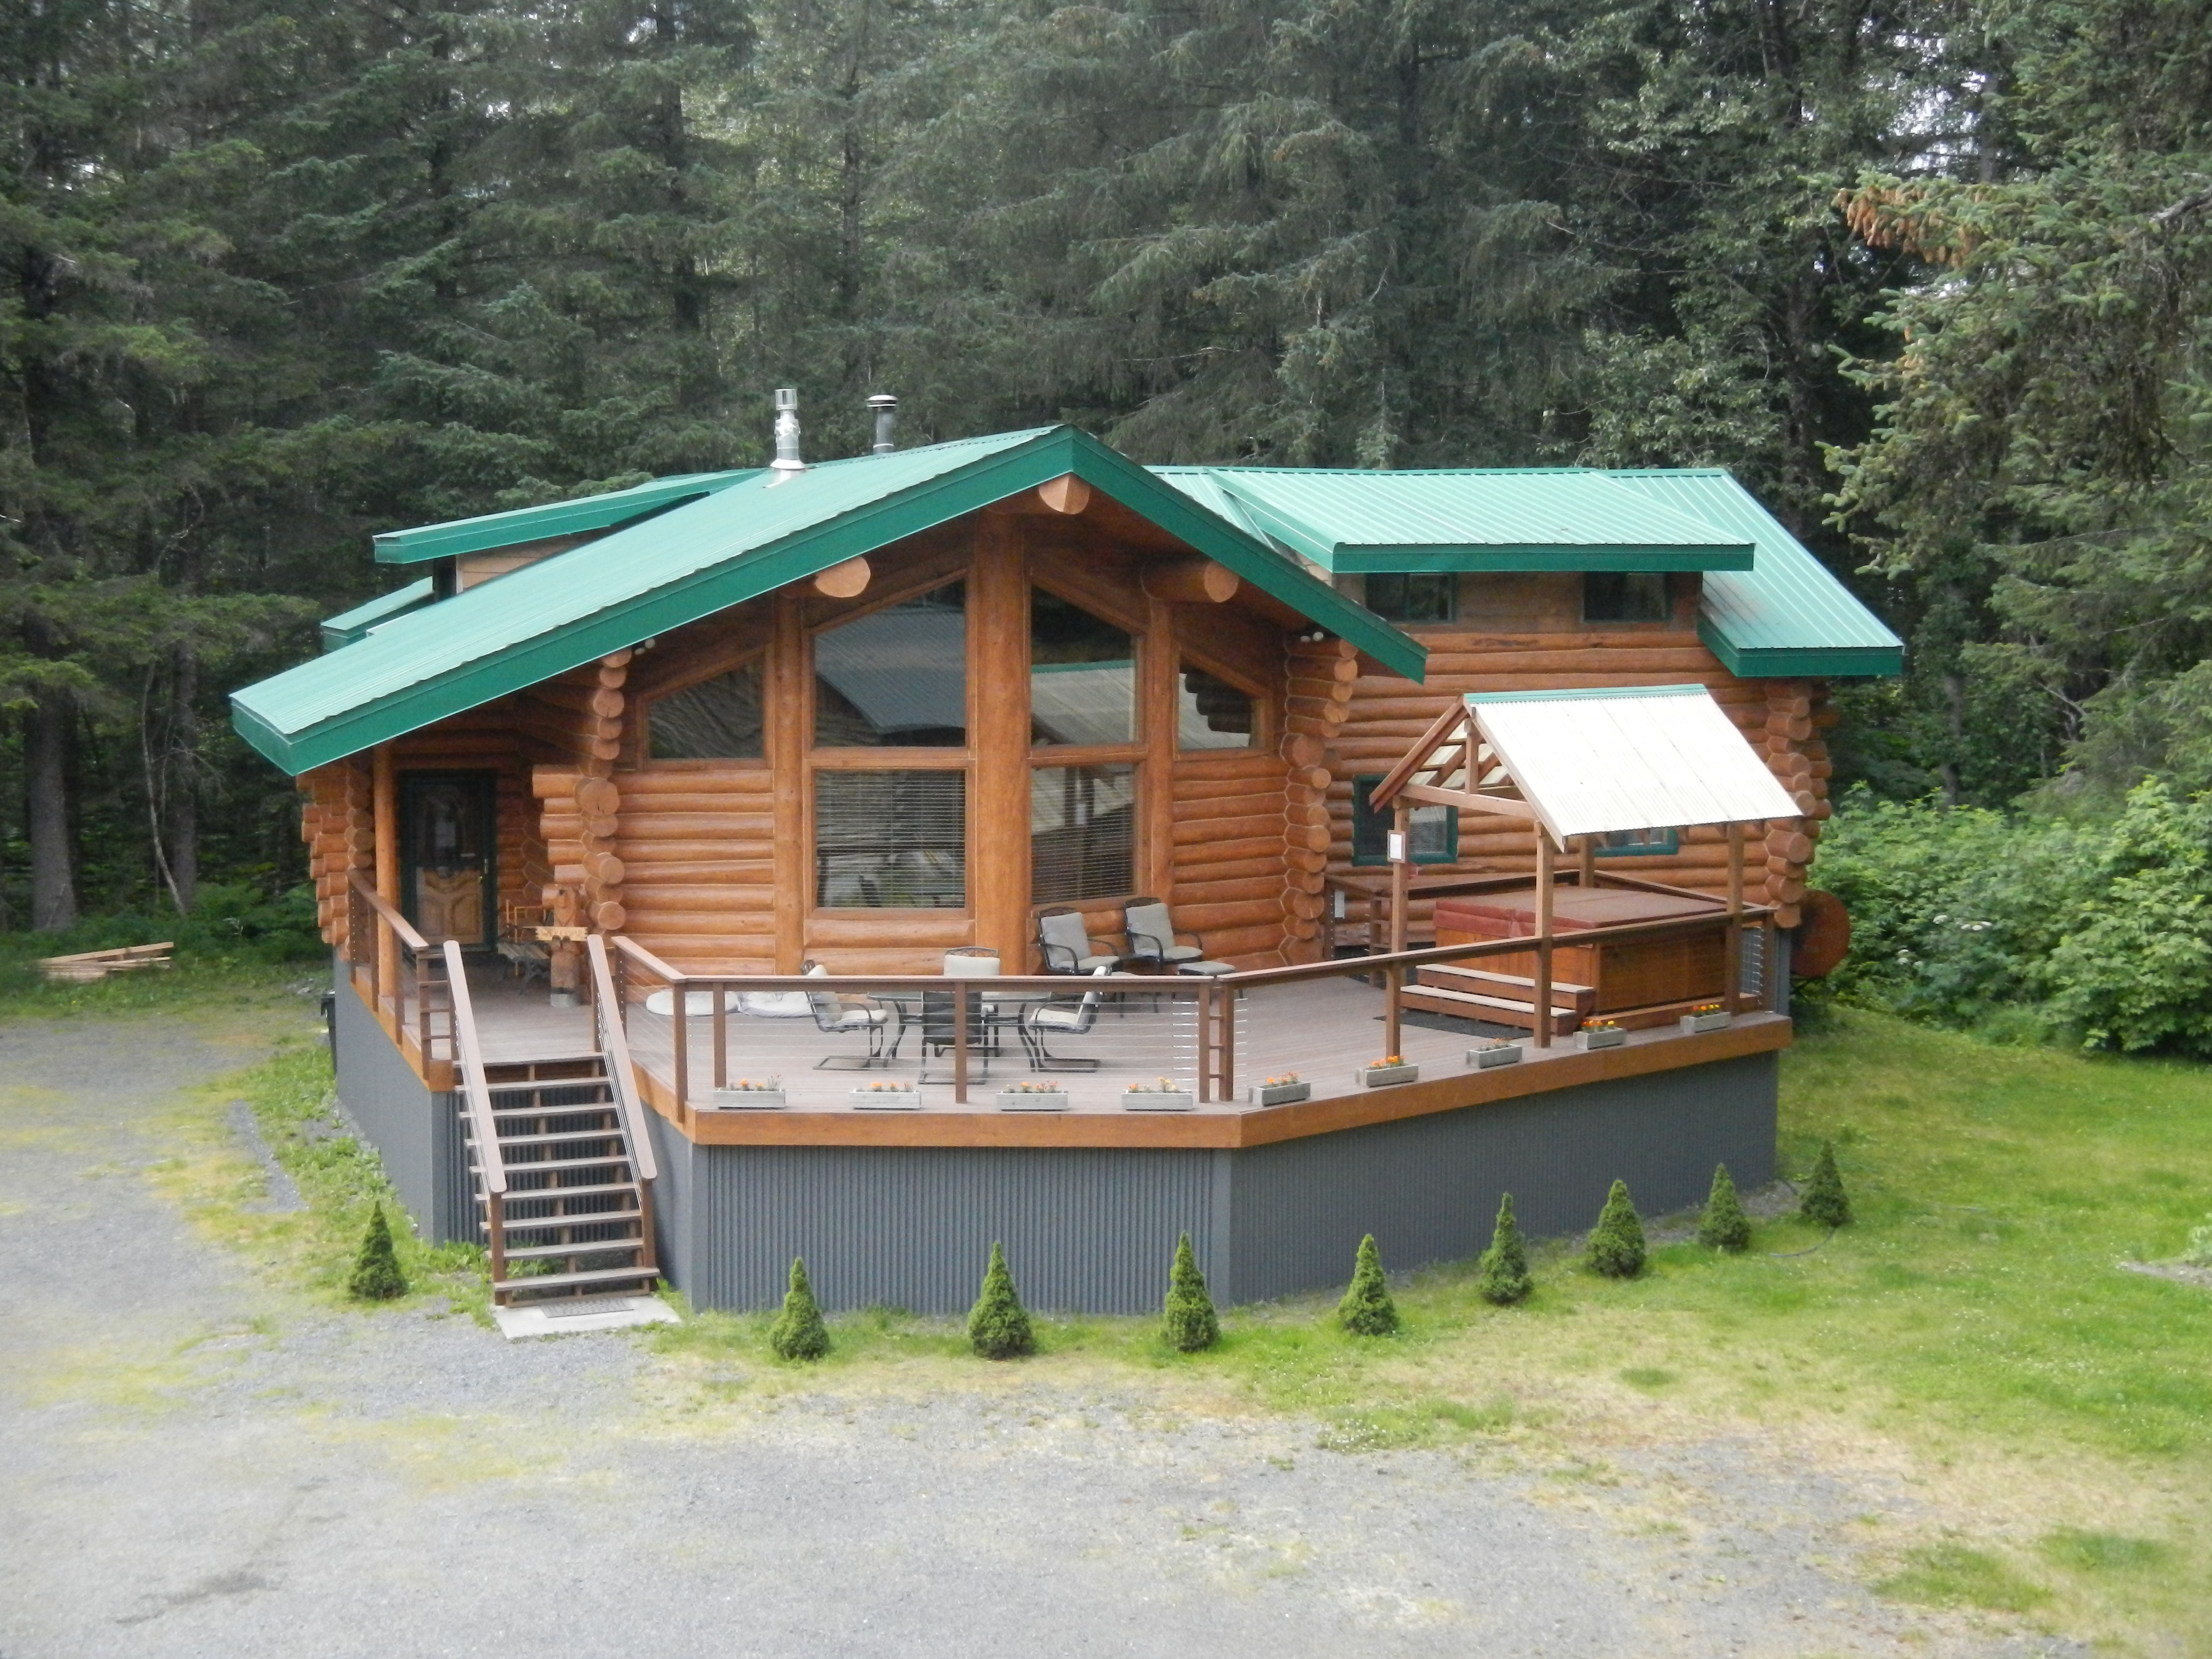 homes sale su breckenridge for drive mat in area alaska o ak cabins neighborhoods pass e wasilla hatcher